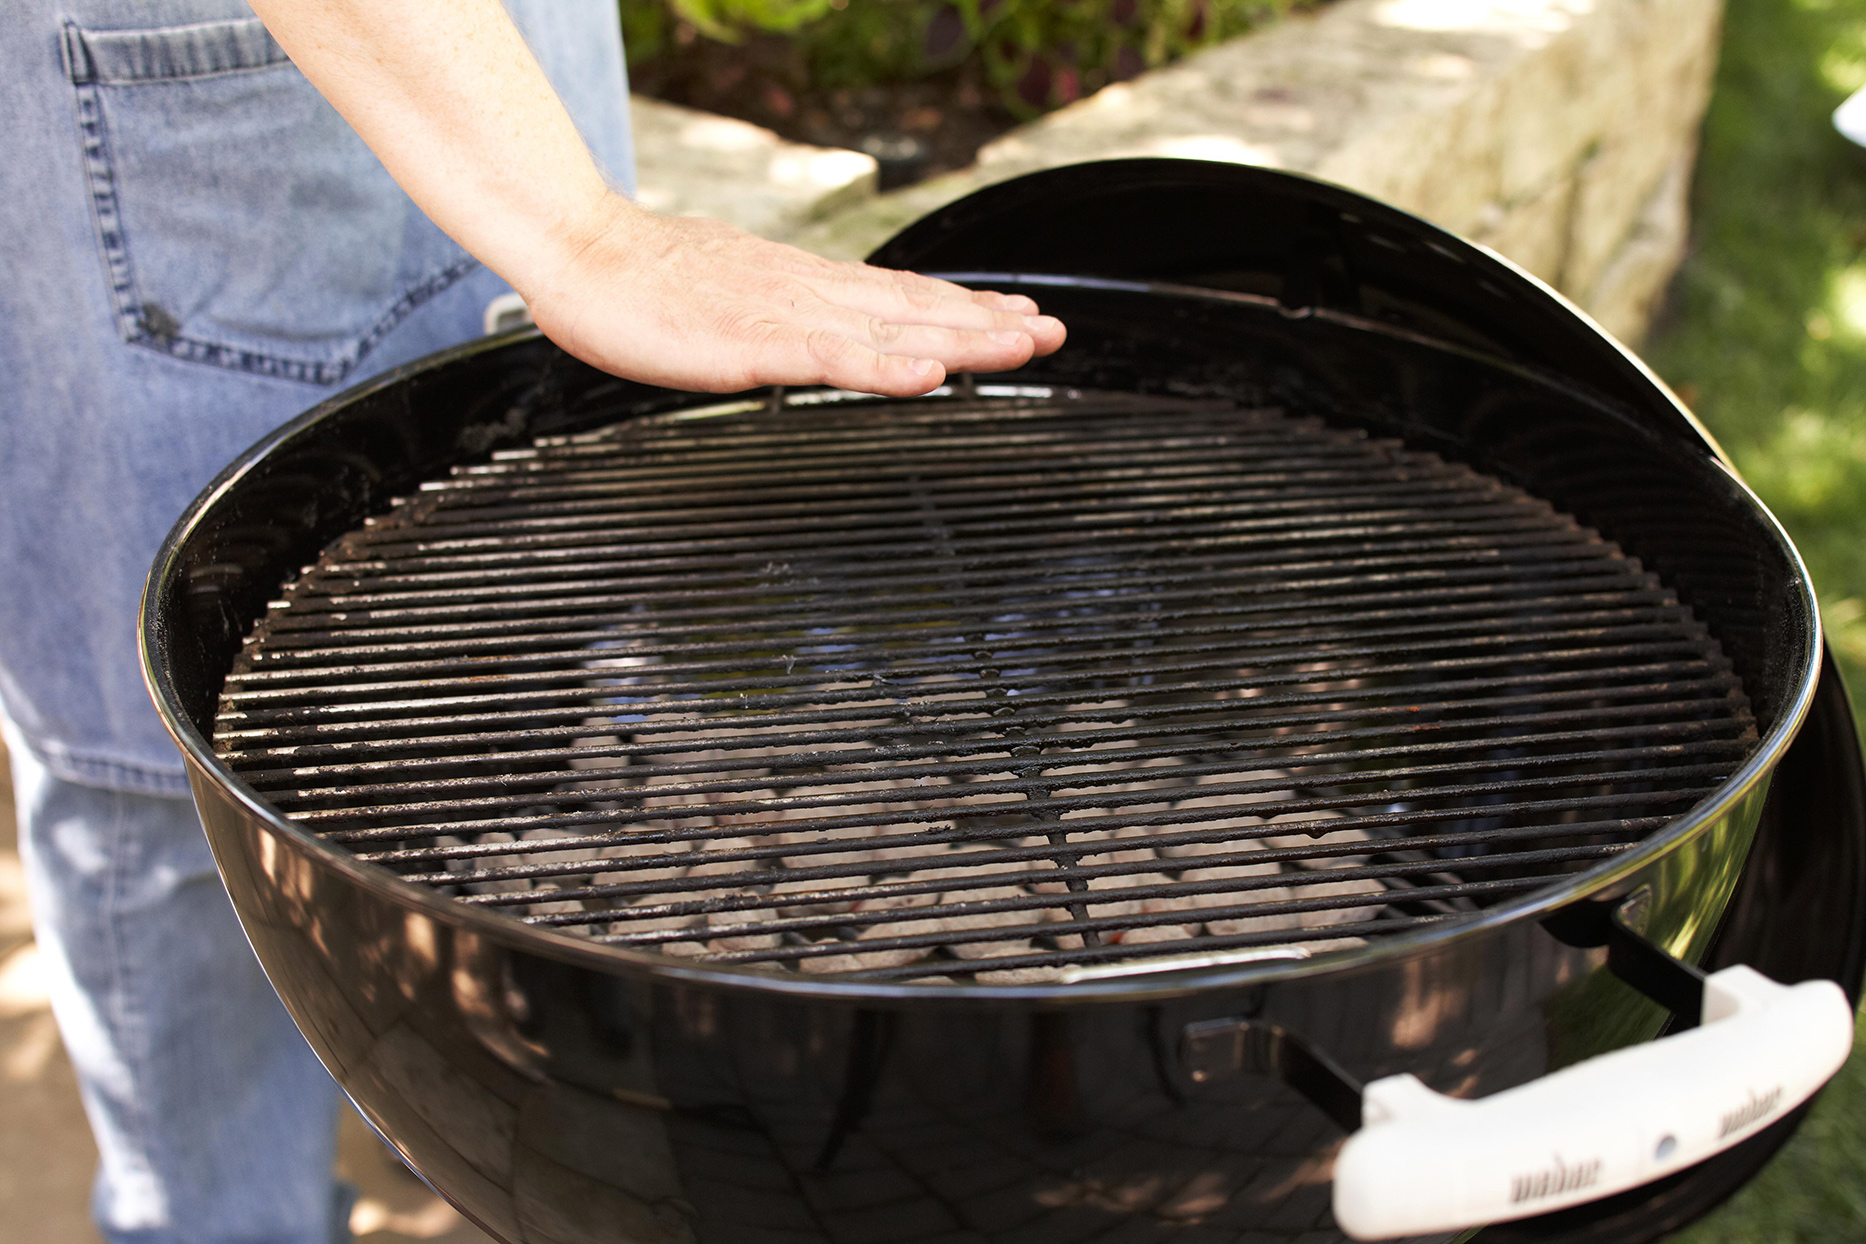 Using the hand method to test grill temperature over a charcoal grill